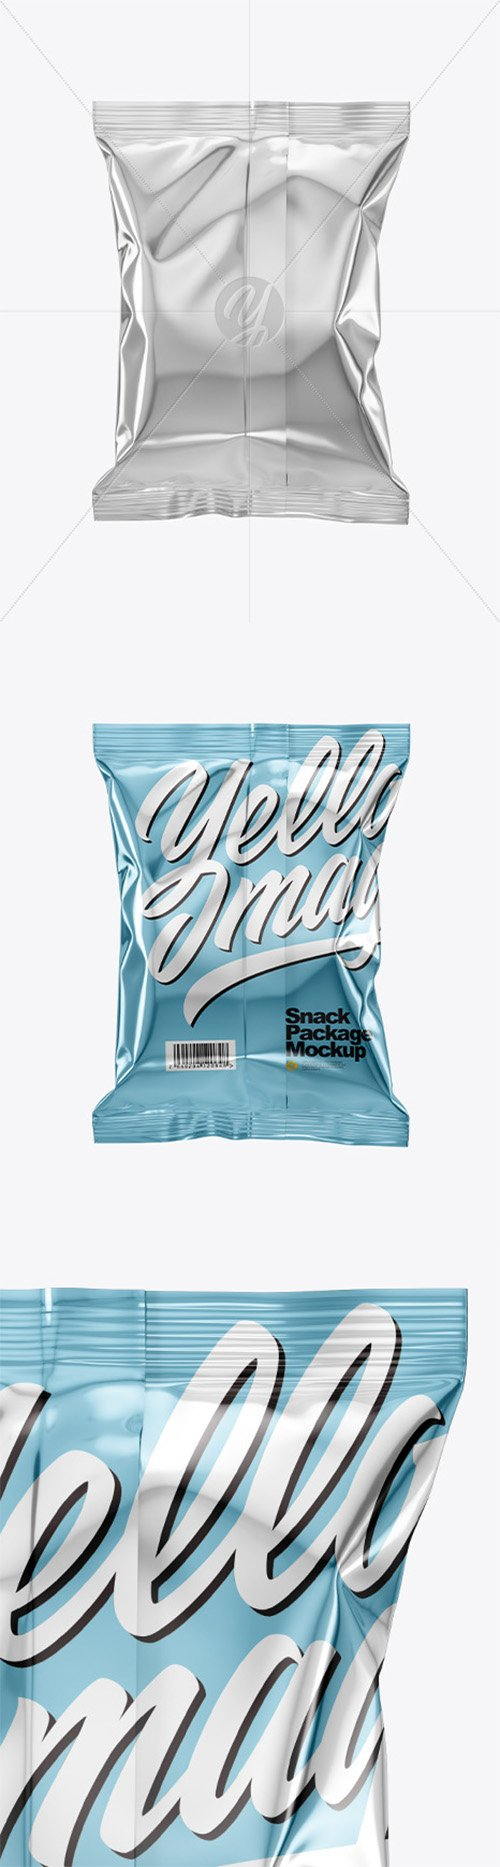 Metallic Snack Package Mockup - Back View 50597 TIF